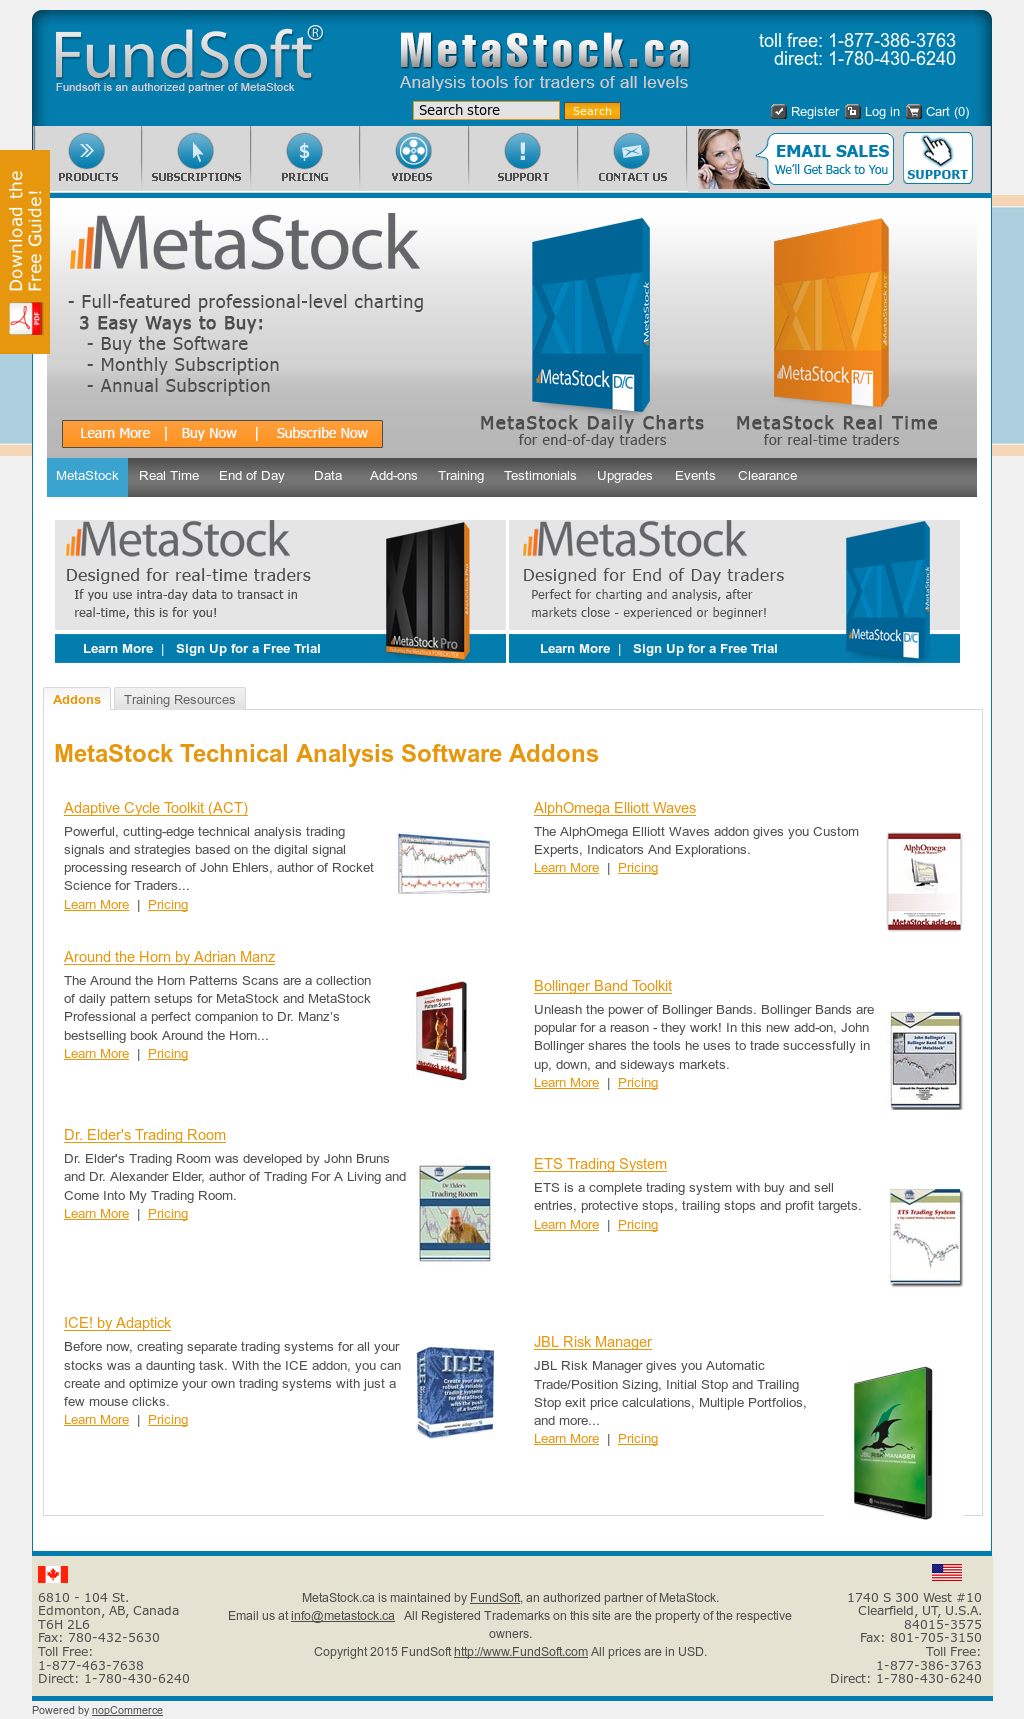 Metastock Competitors, Revenue and Employees - Owler Company